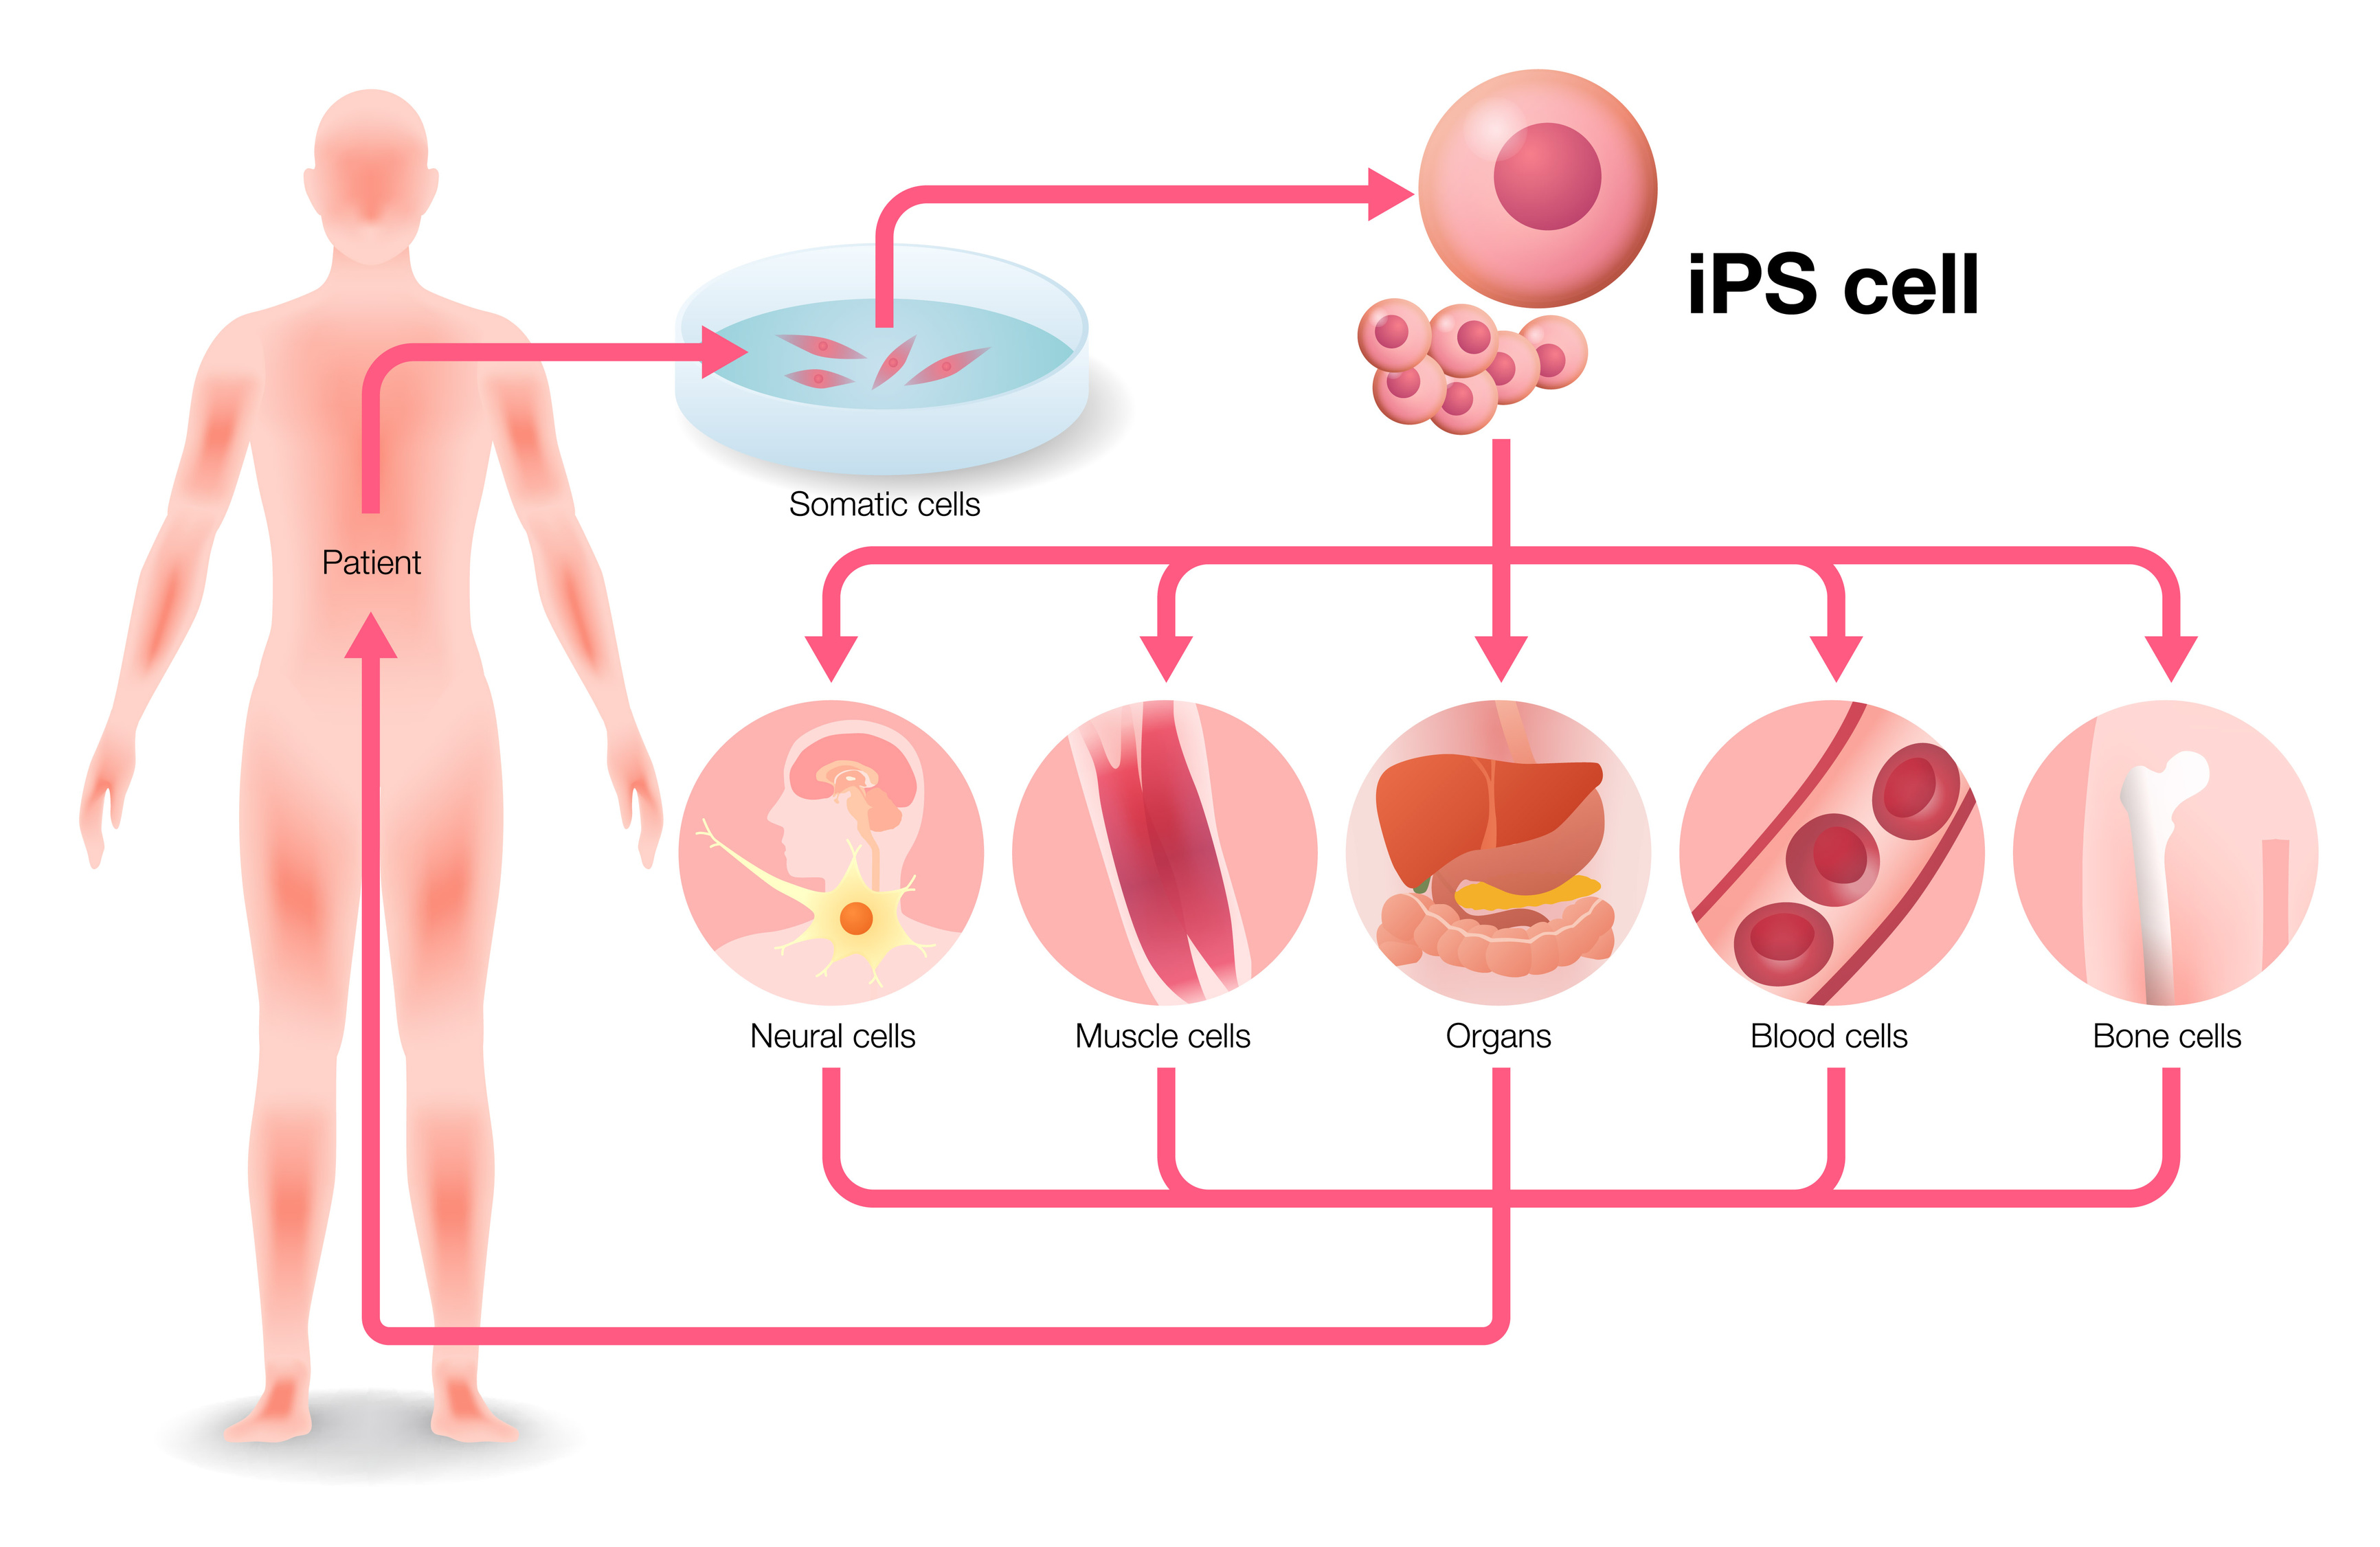 Induced pluripotent stem cells (iPSC) - tebu-bio